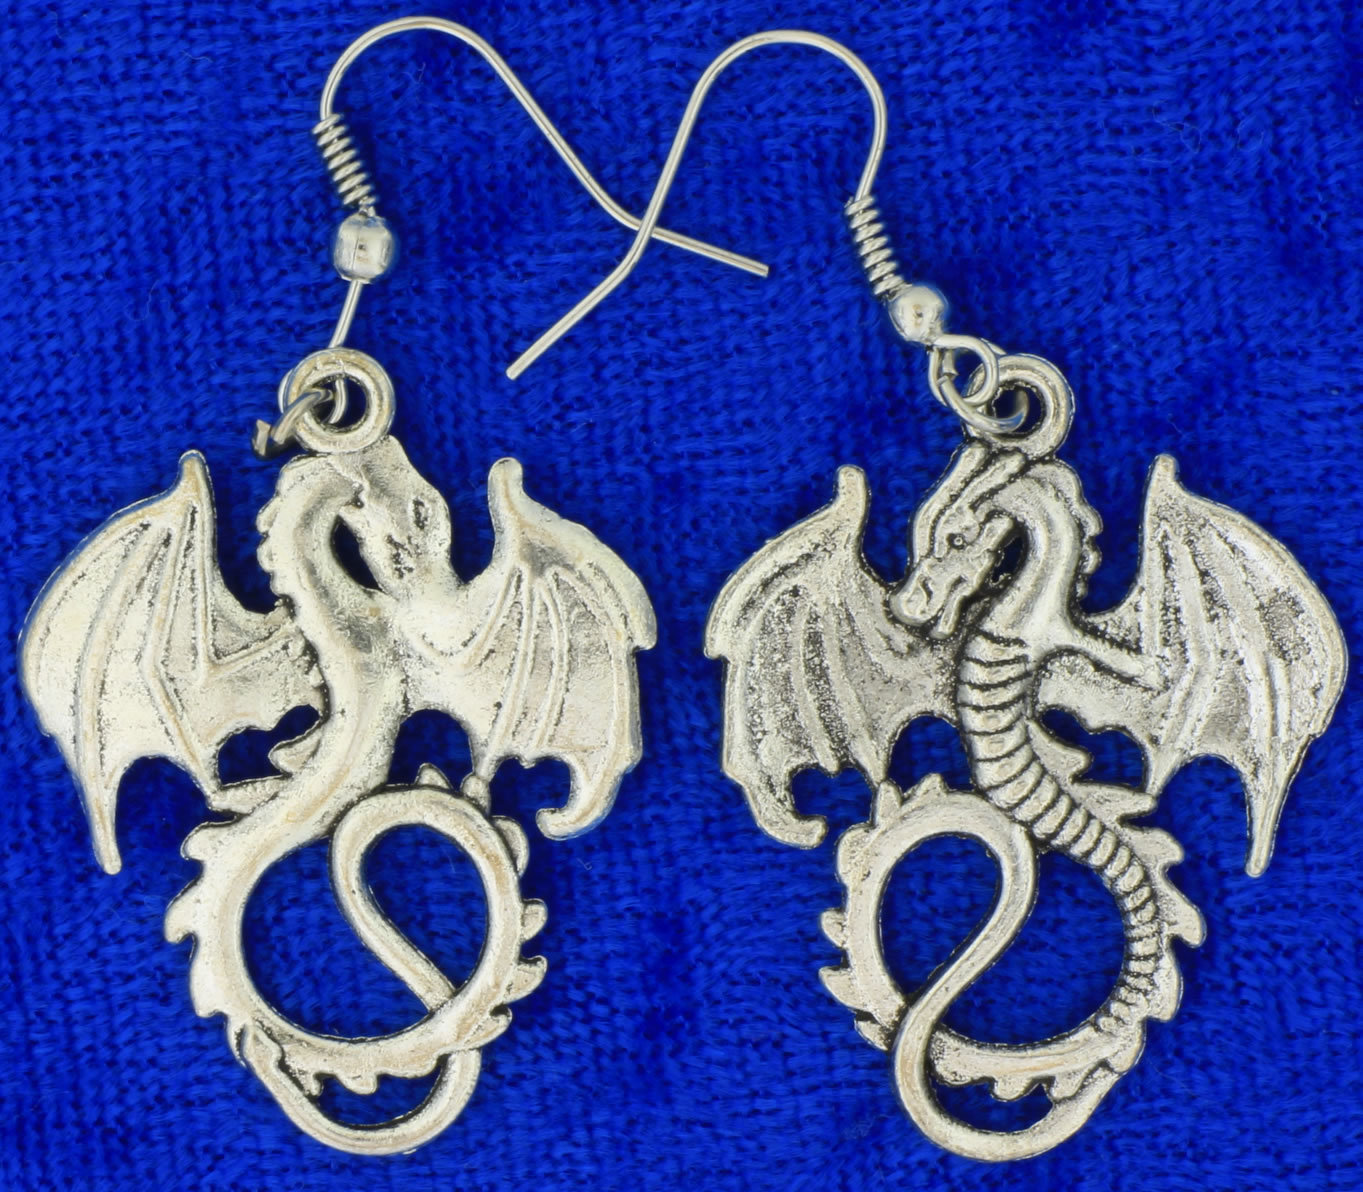 Primary image for World of Warcraft Dragon Earrings (Set of Two) WOW Silver Color